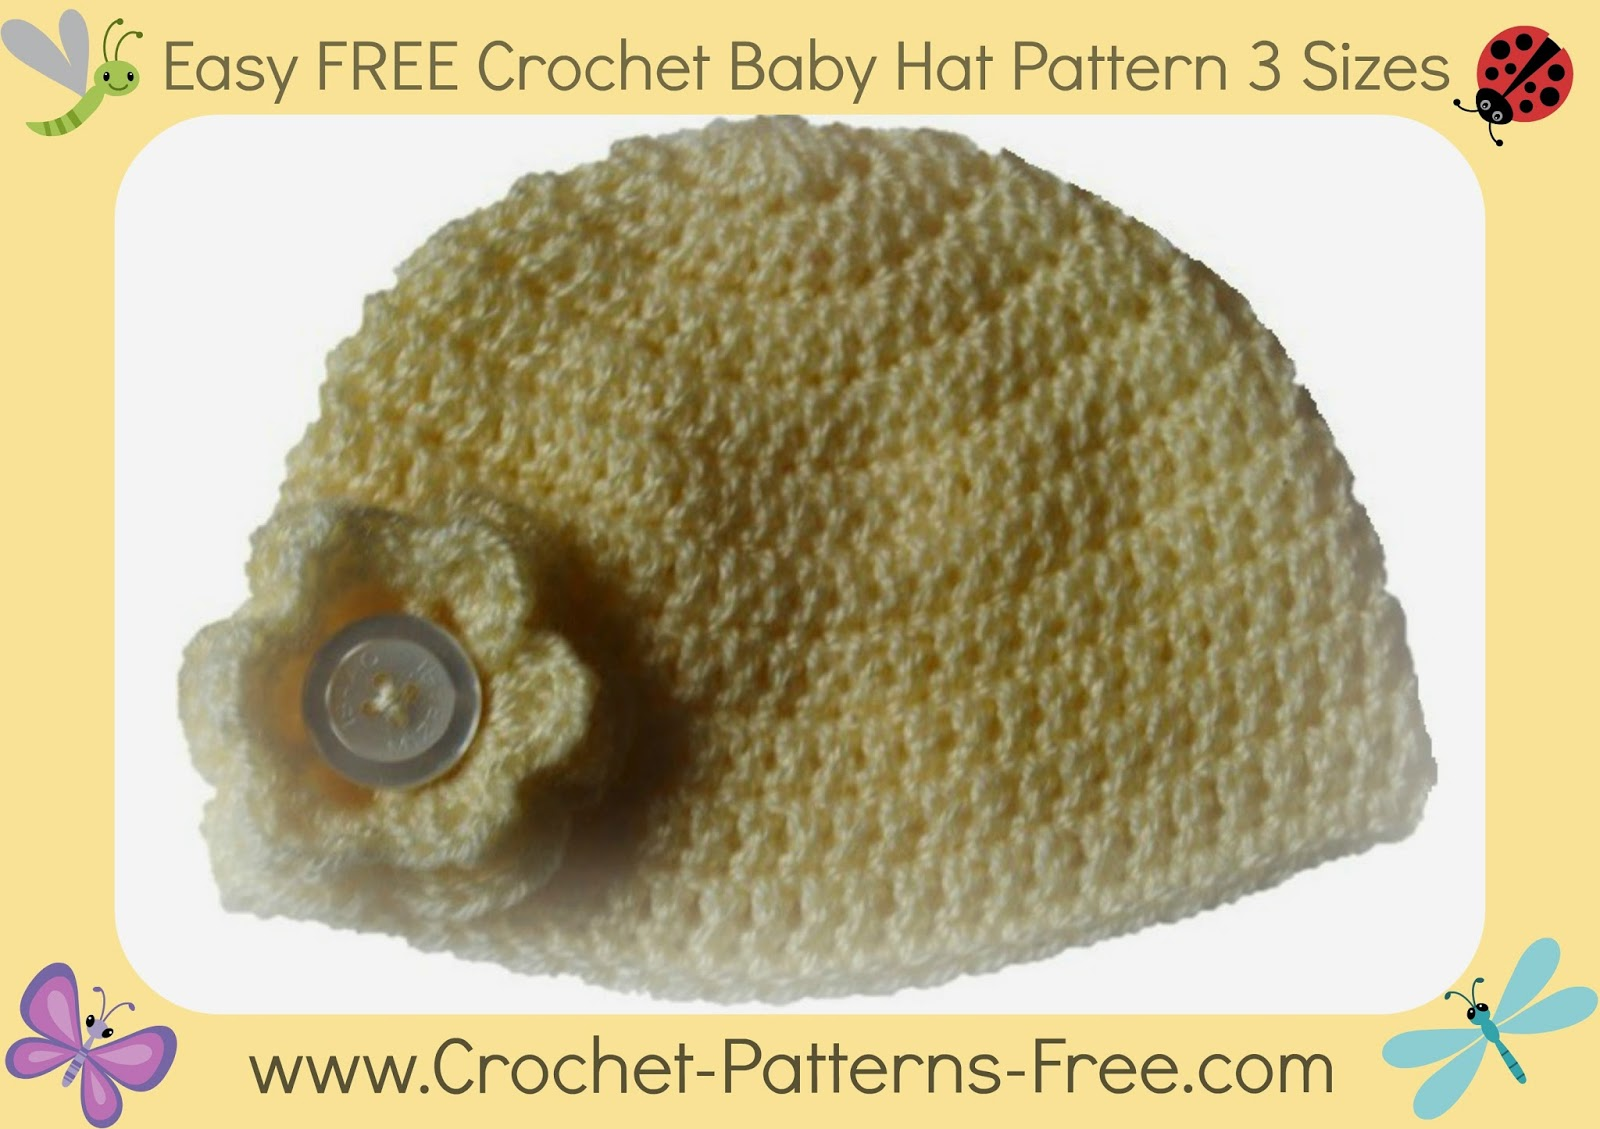 Free crochet pattern for baby toddler and child hat booties free crochet baby hat pattern 3 sizes bankloansurffo Image collections